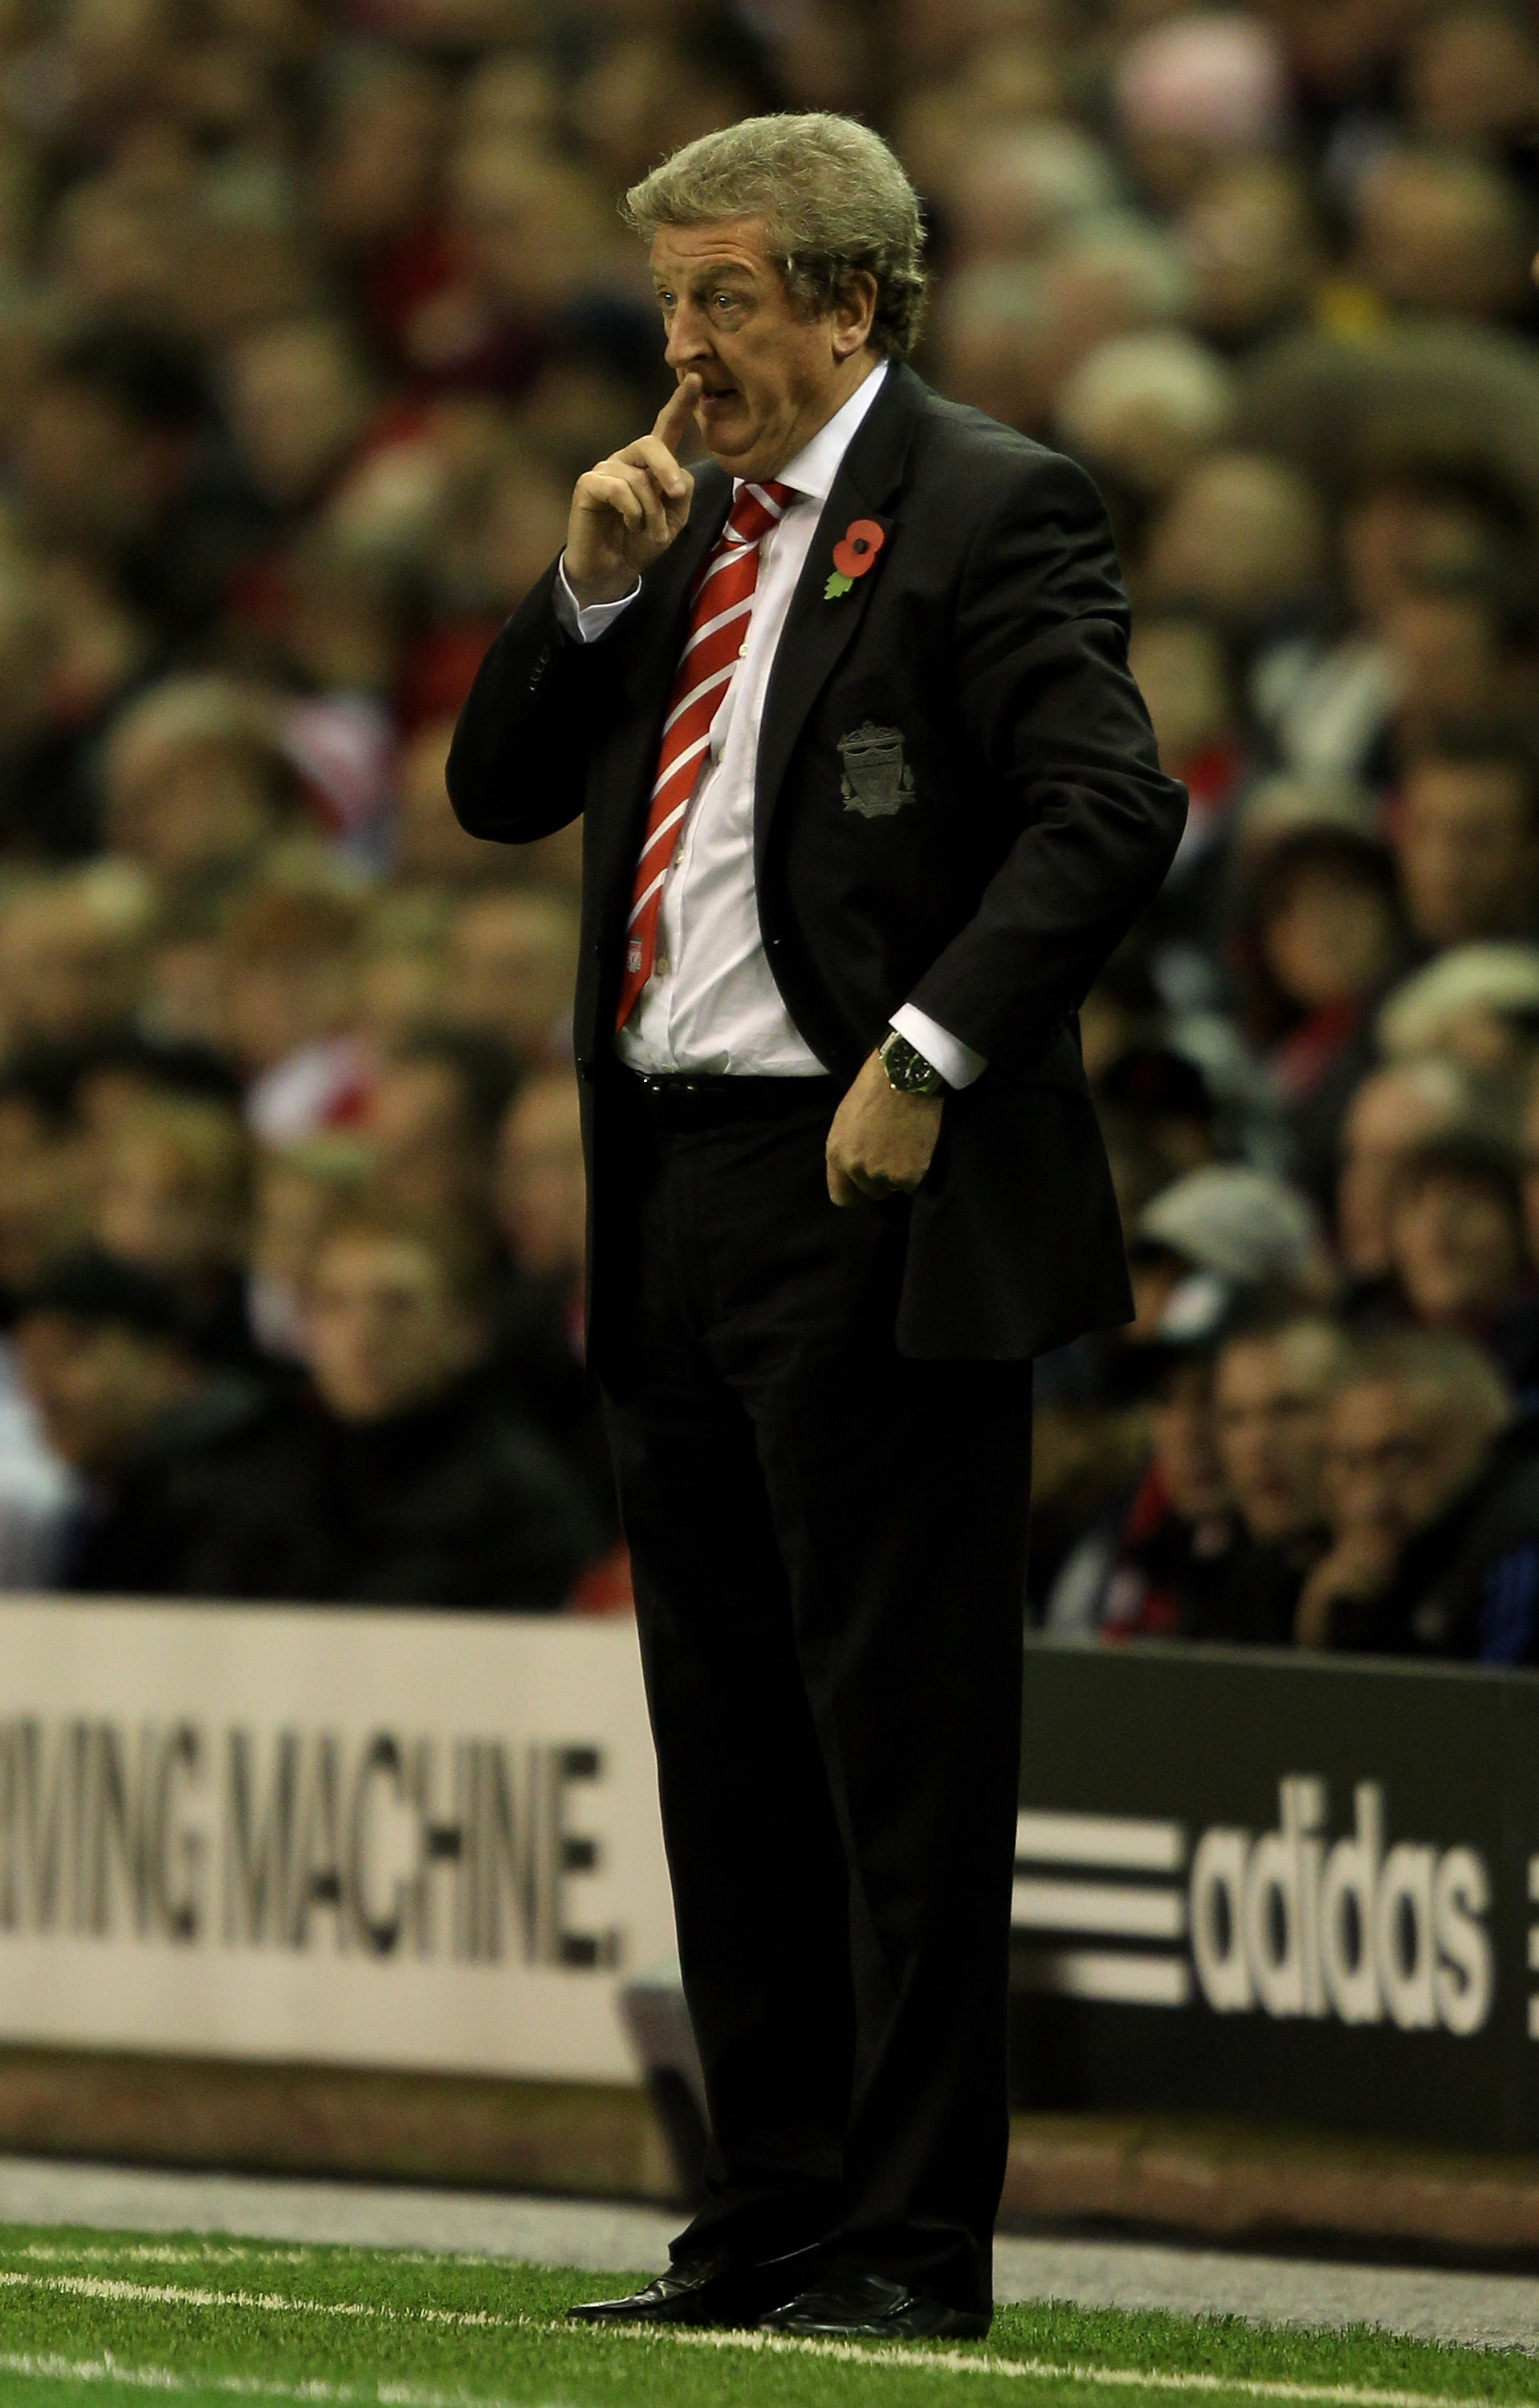 LIVERPOOL, ENGLAND - NOVEMBER 04:  Liverpool Manager Roy Hodgson reacts during the UEFA Europa League Group K match beteween Liverpool and SSC Napoli at Anfield on November 4, 2010 in Liverpool, England.  (Photo by Clive Brunskill/Getty Images)